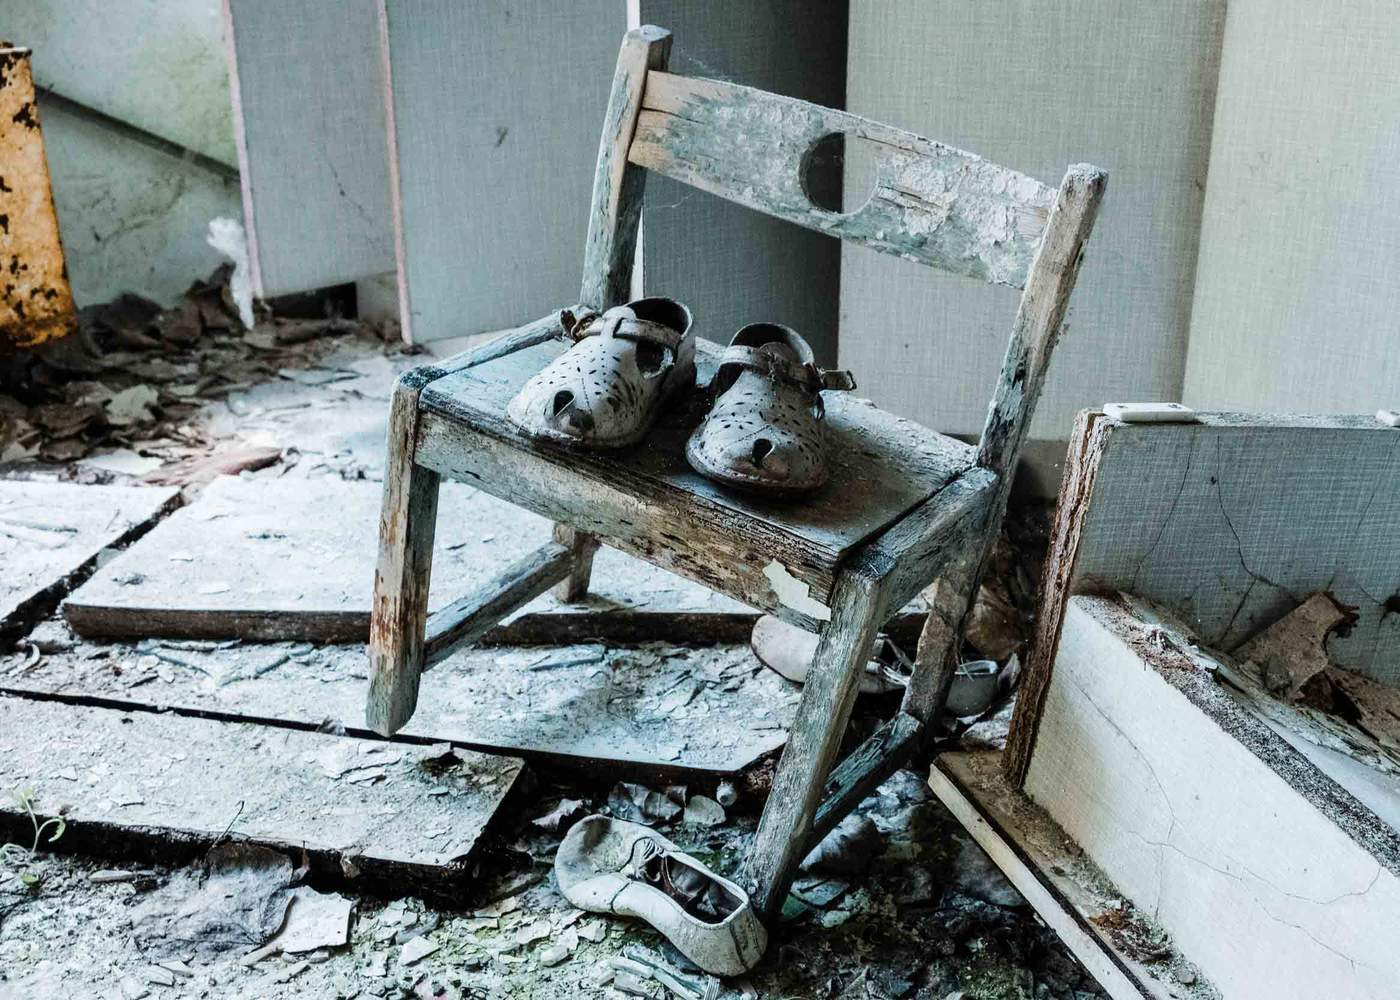 A child's shoes left behind in an abandoned nursery in the city of Pripyat